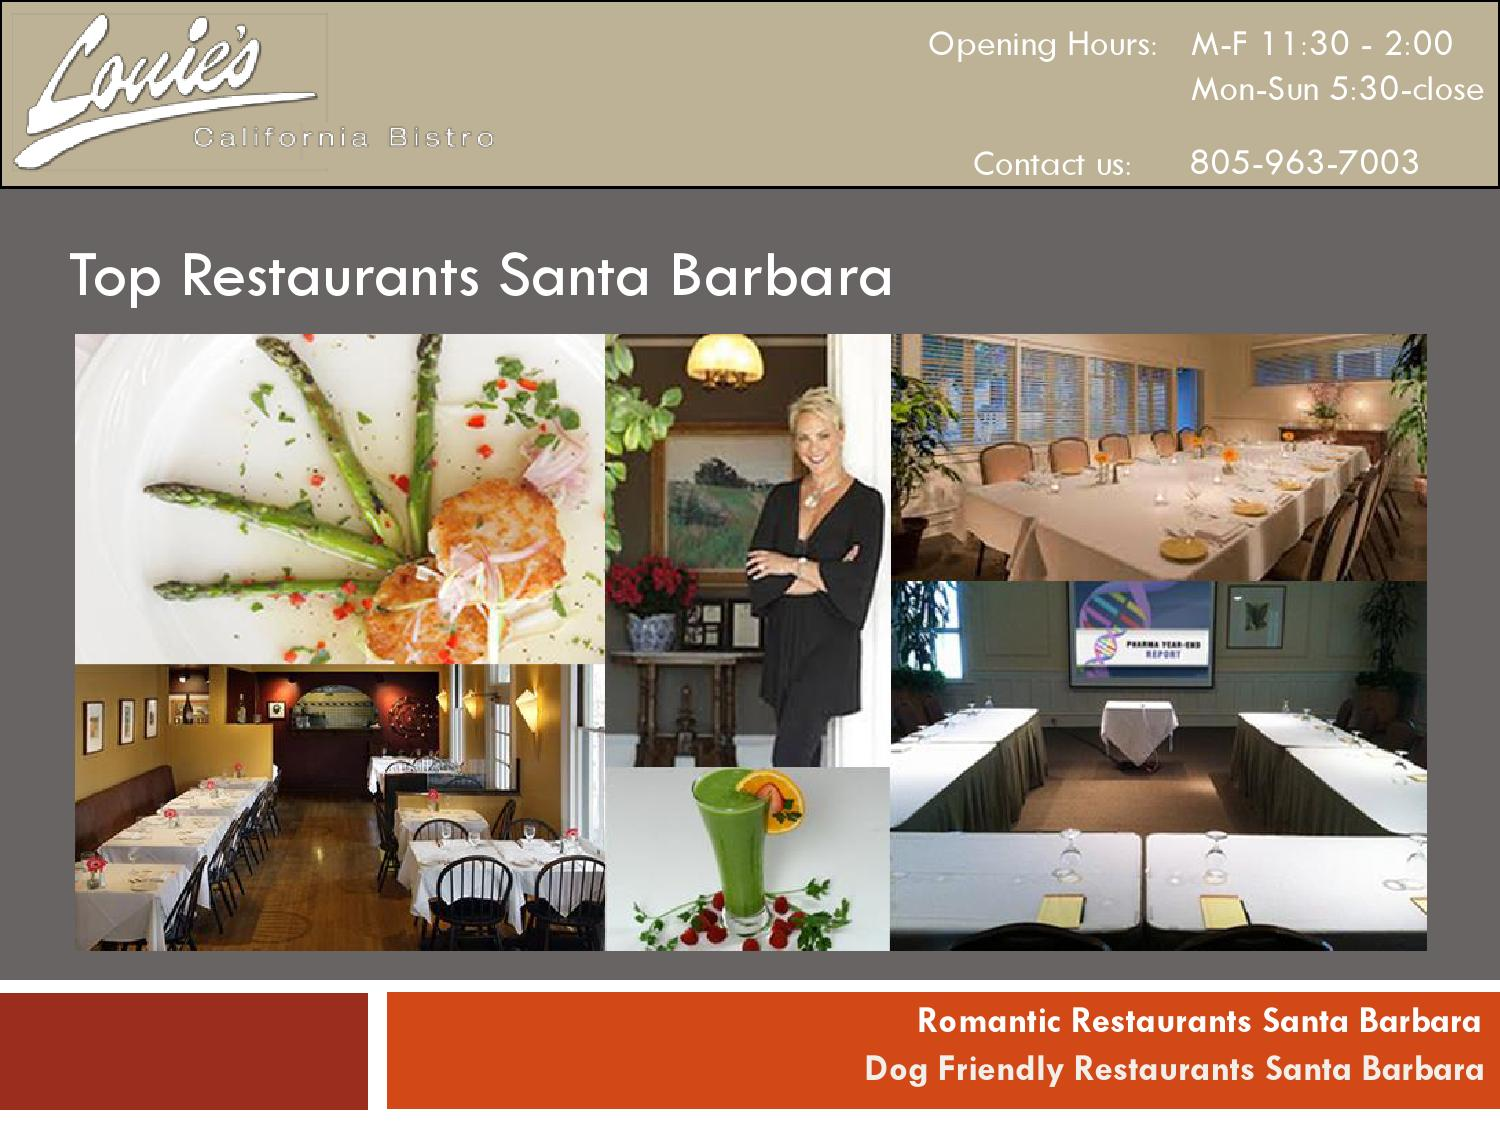 Santa Barbara Restaurants Lunch Seafood Dining Banquet Louie 039 S California B By Anne Rizzoli Issuu